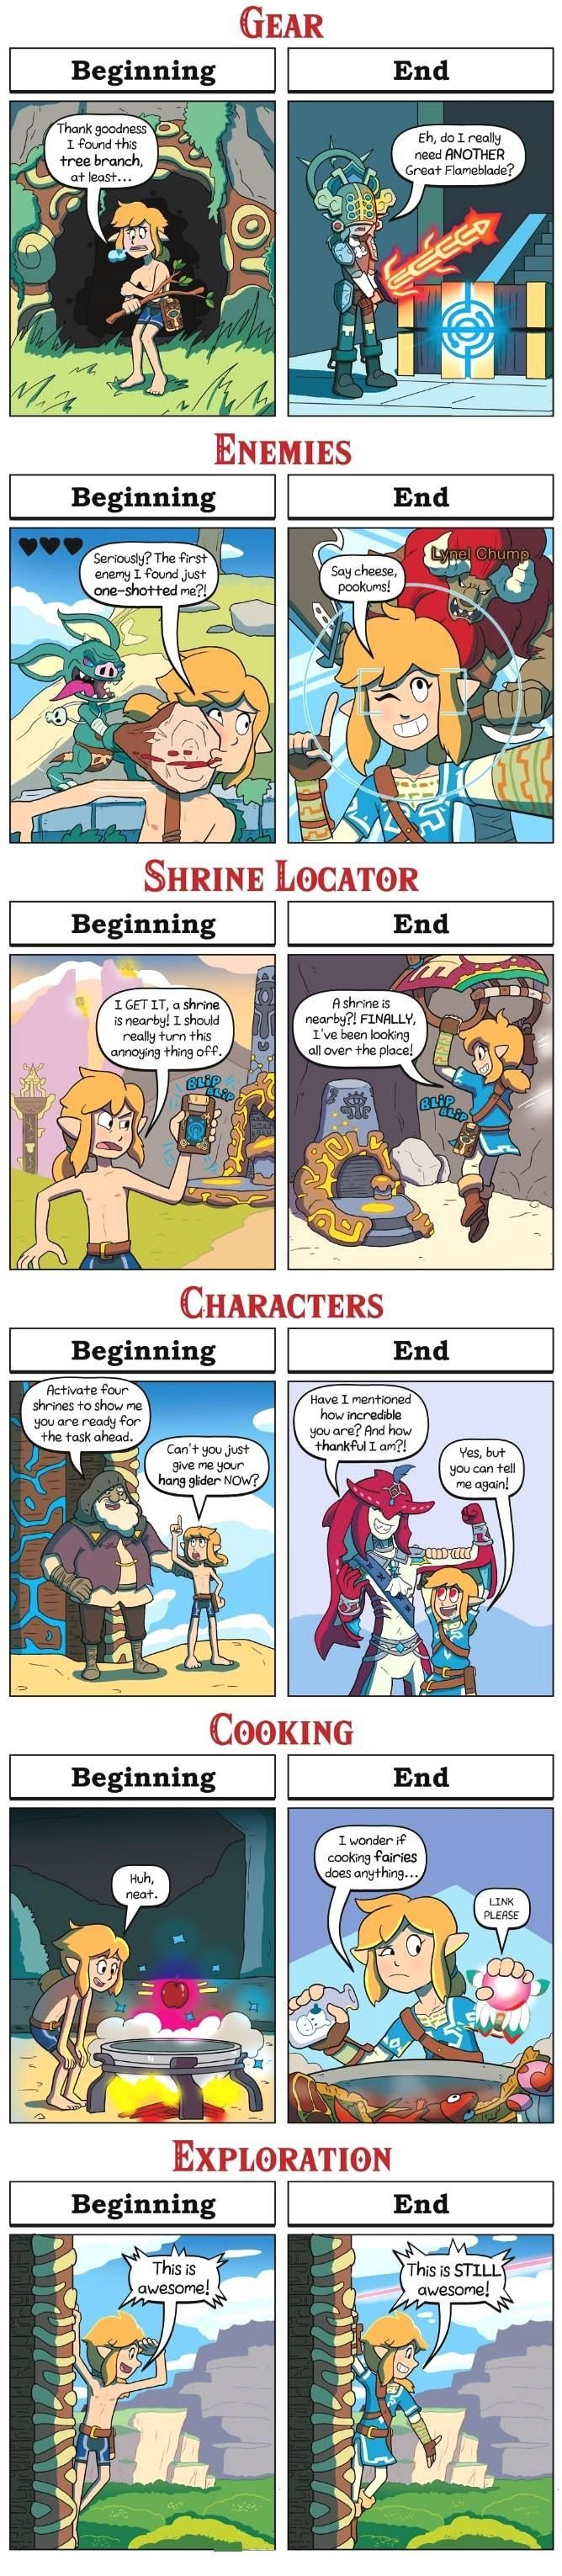 Zelda: Breath of the Wild - Beginning VS. End